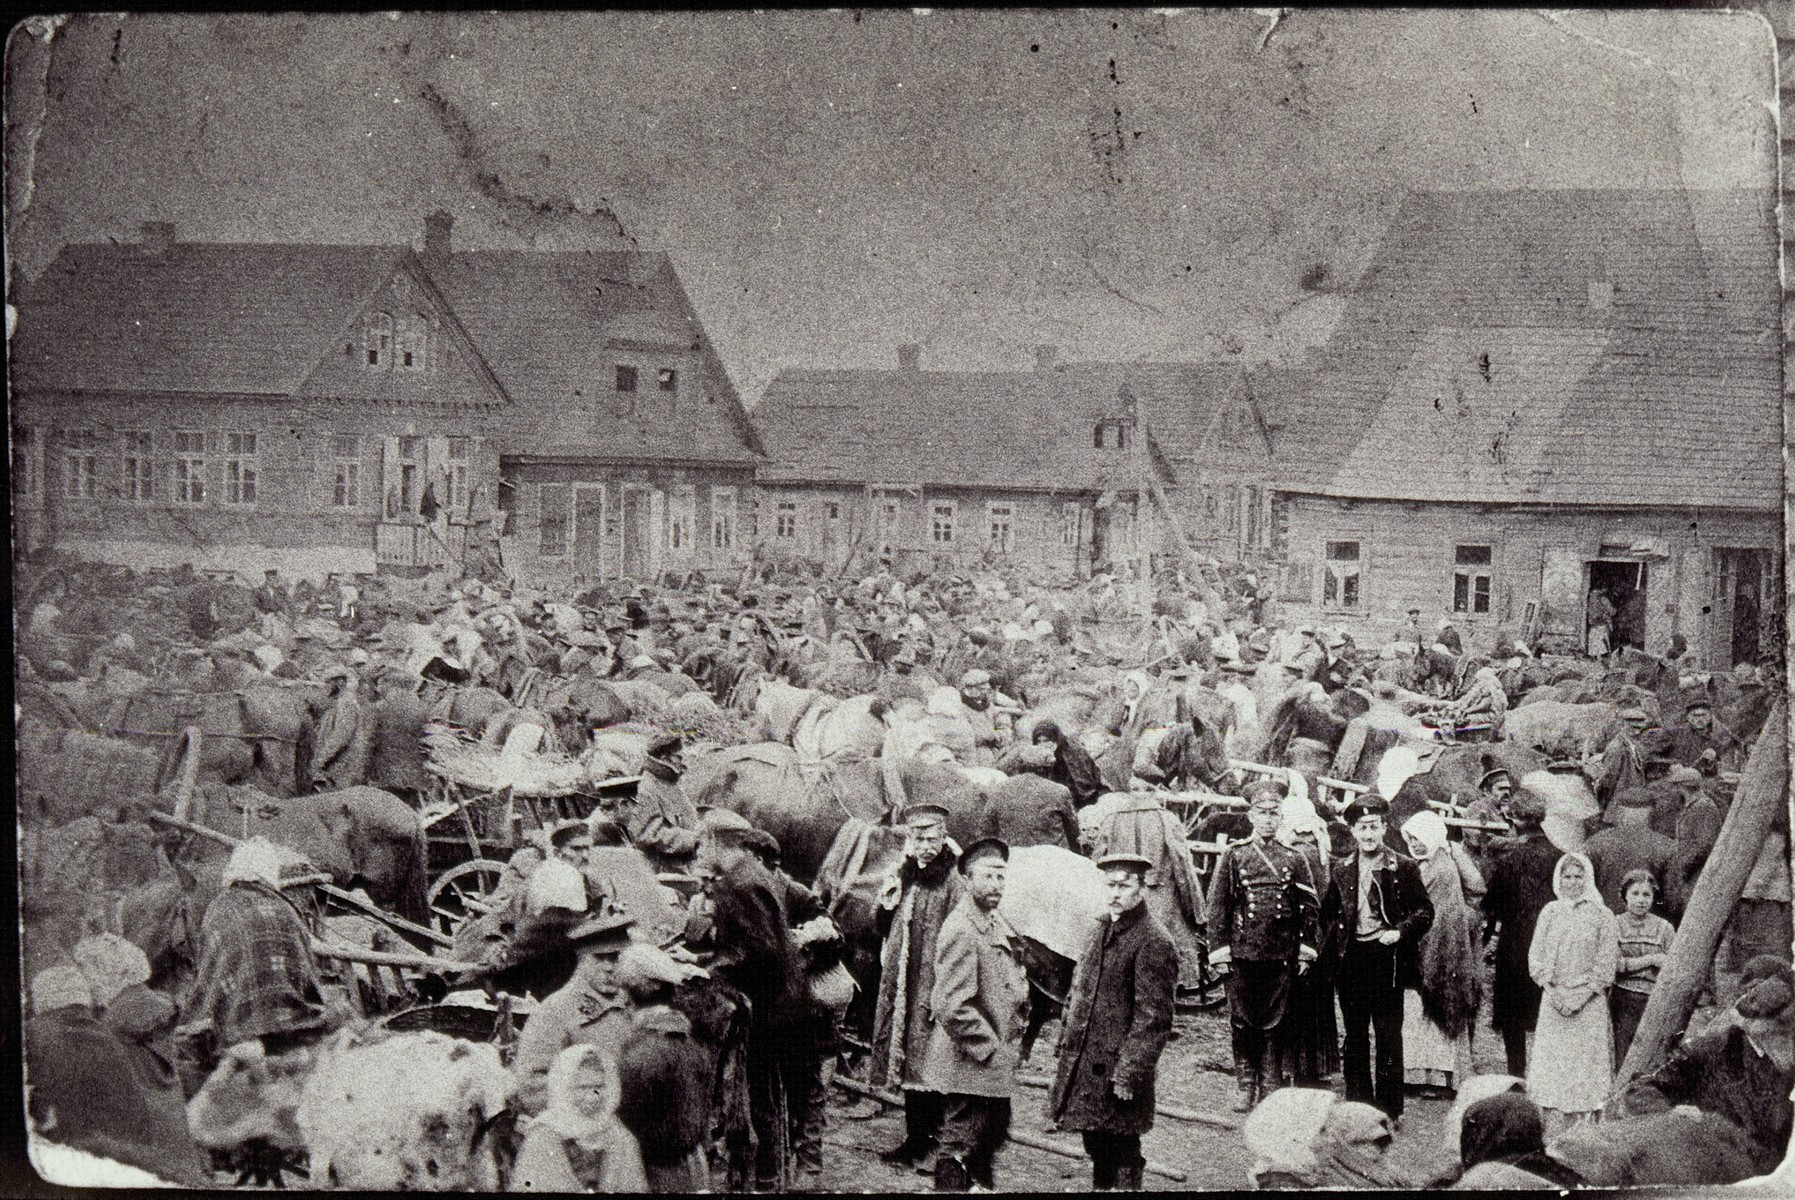 View of the townspeople and horse-drawn wagons in the outdoor market in Eisiskes prior to World War I.  The photo was mailed to a relative in America.